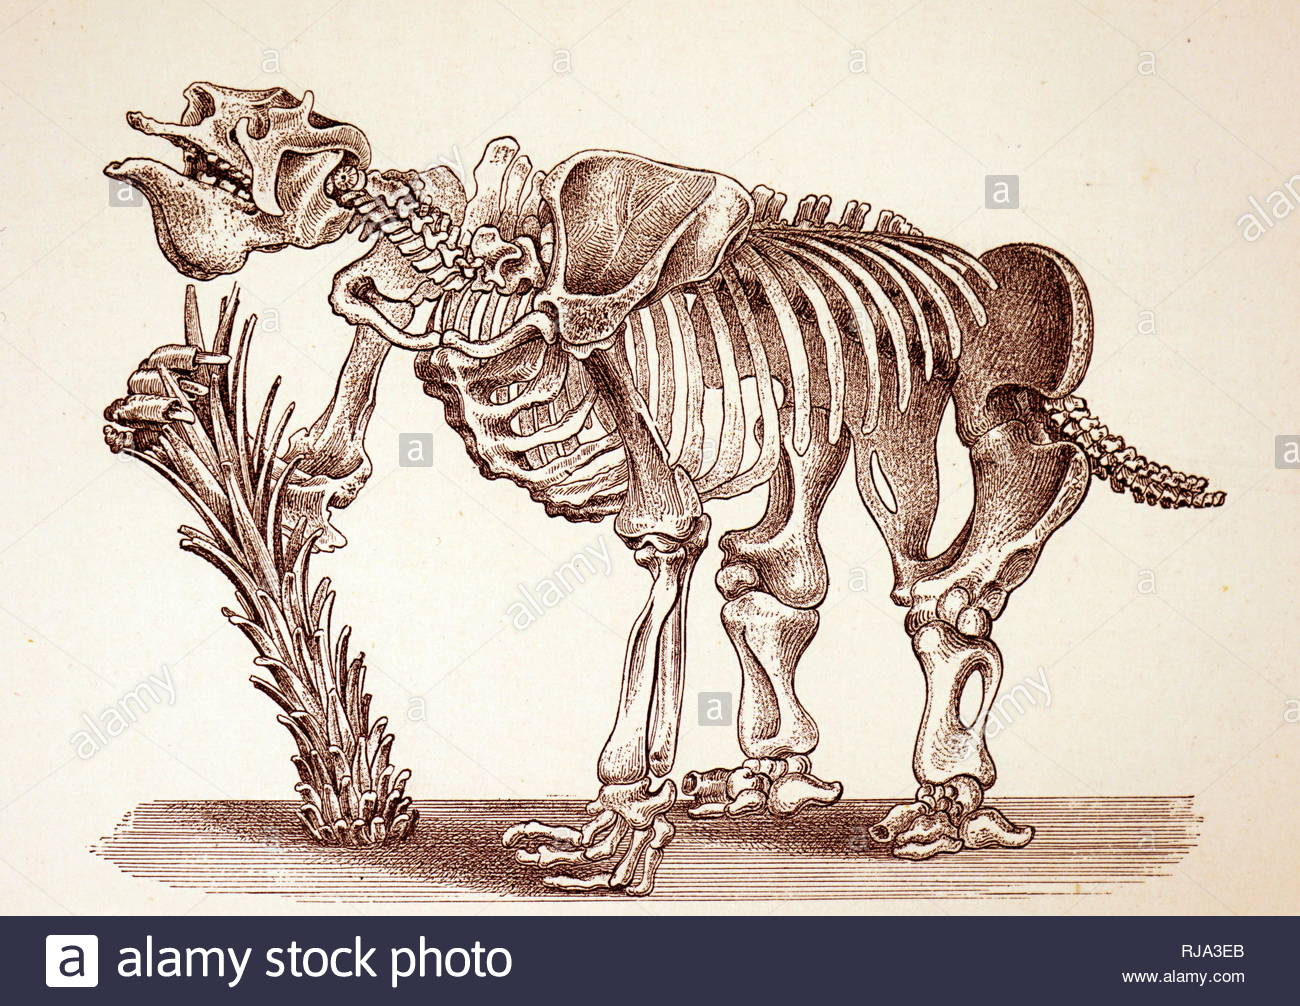 Engraving depicting the skeleton of a Megatherium (Grand ground sloth). Megatherium was a genus of elephant-sized ground sloths endemic to South America, sometimes called the giant ground sloth, that lived from the Early Pliocene through the end of the Pleistocene. Dated 19th century - Stock Image